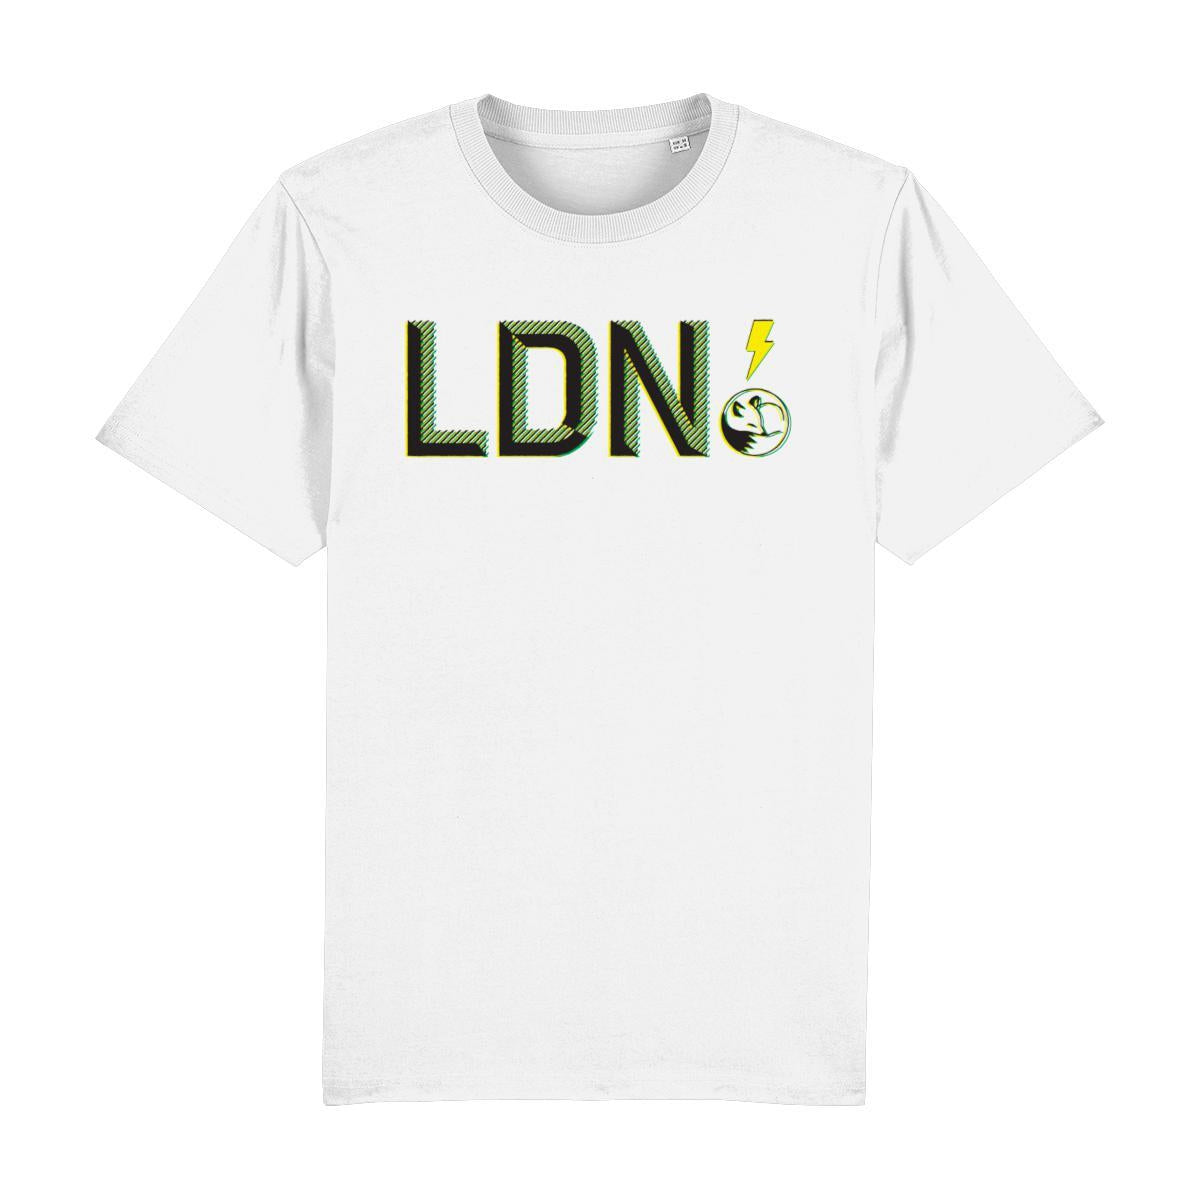 LDN-B Front Print-Clothing-Kitsune Clothing UK Ltd